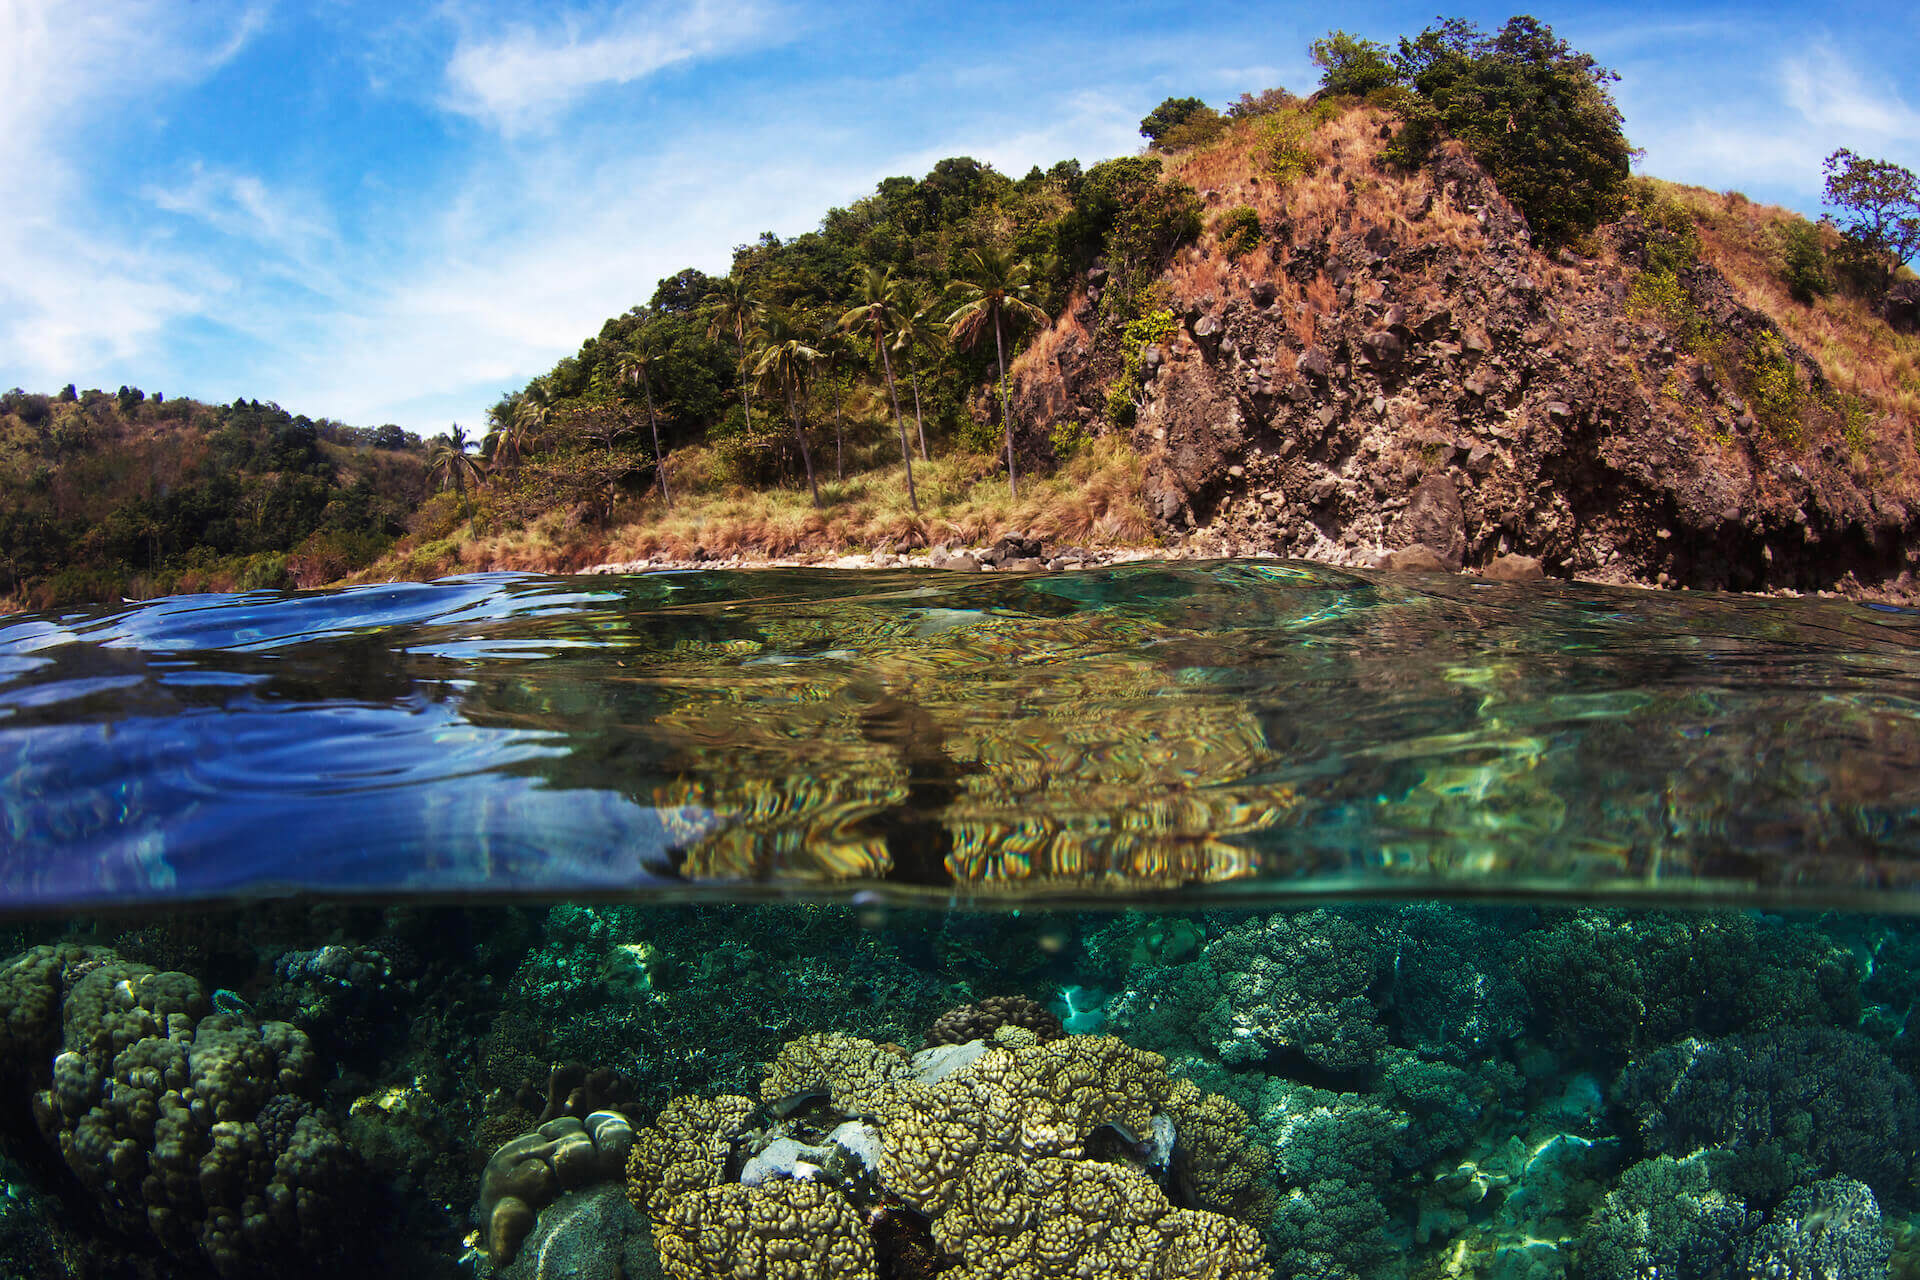 Fishermen, scientists, and environmental activists have been at work for decades inimaginary constructs called marine protected areas. This grand experiment started in Apo Island, through the work of one scientist, nearly 40 years ago.